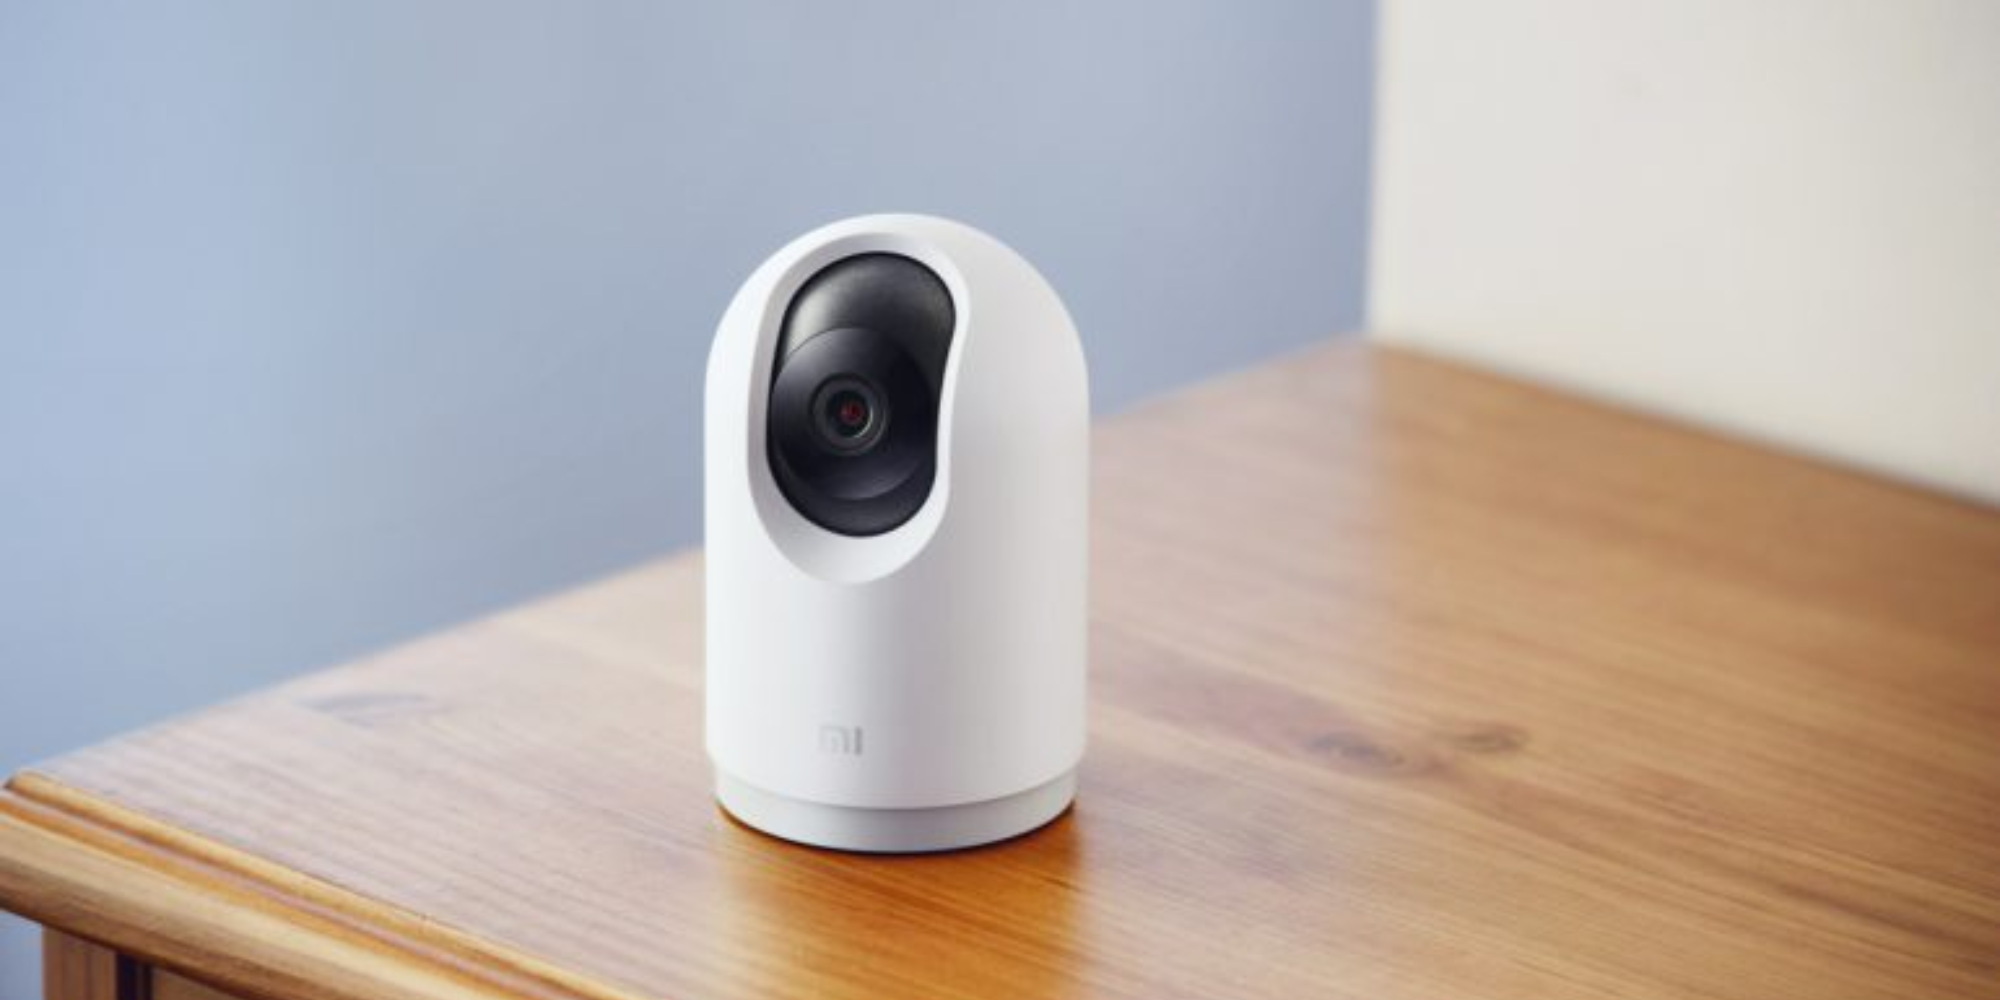 Mi 360 Home Security Camera 2K